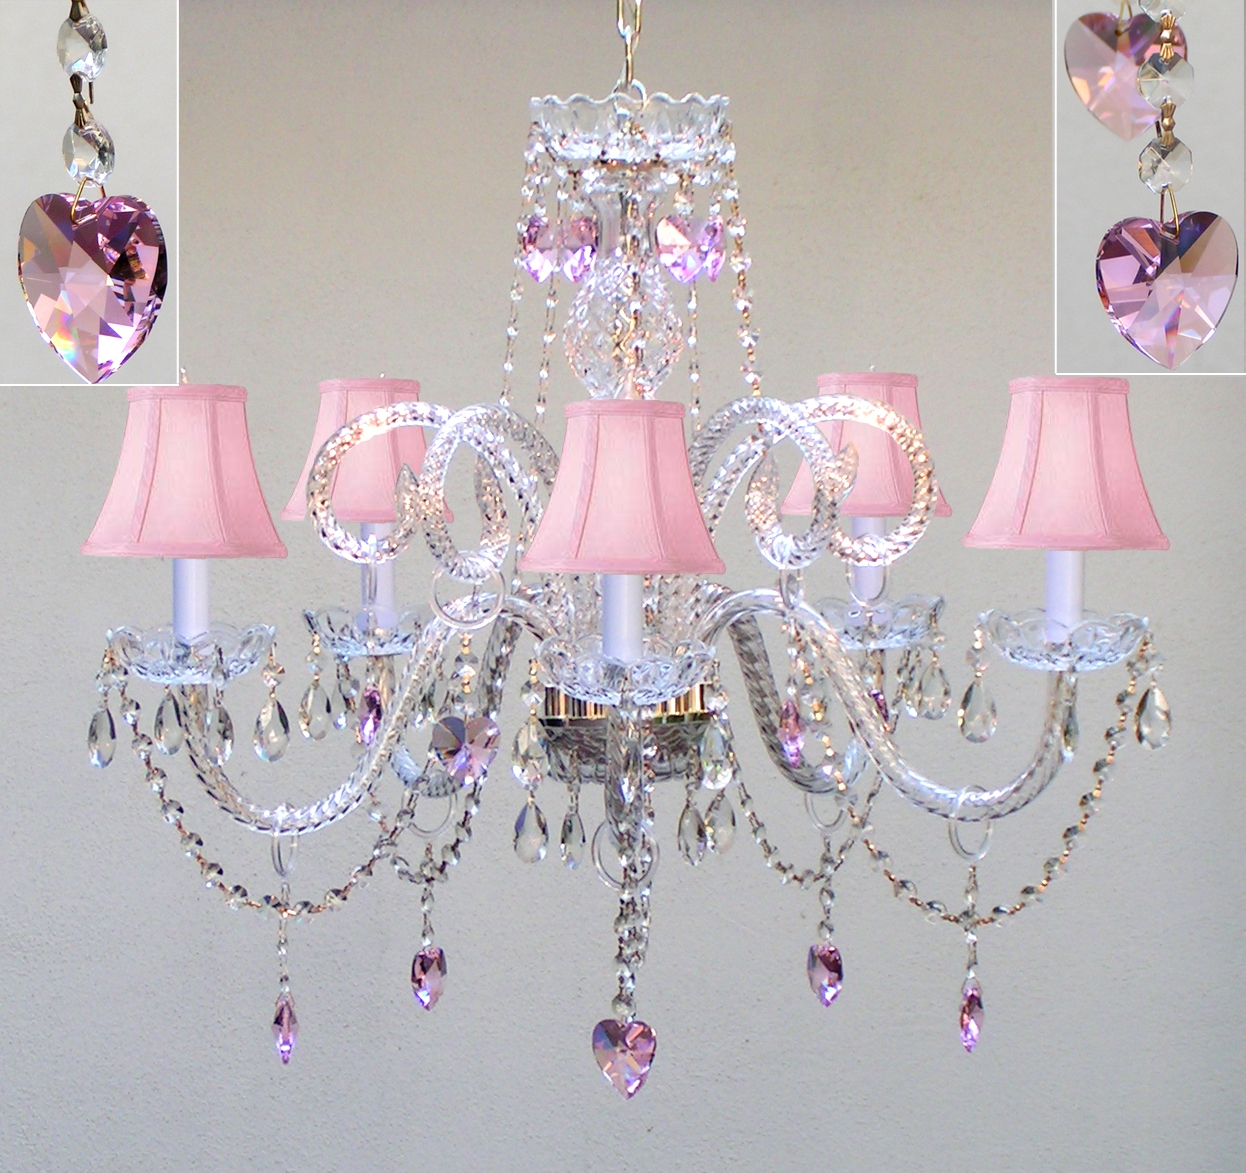 Country French Chandelier Chandeliers Crystal Chandelier Crystal Regarding White And Crystal Chandeliers (Image 14 of 25)